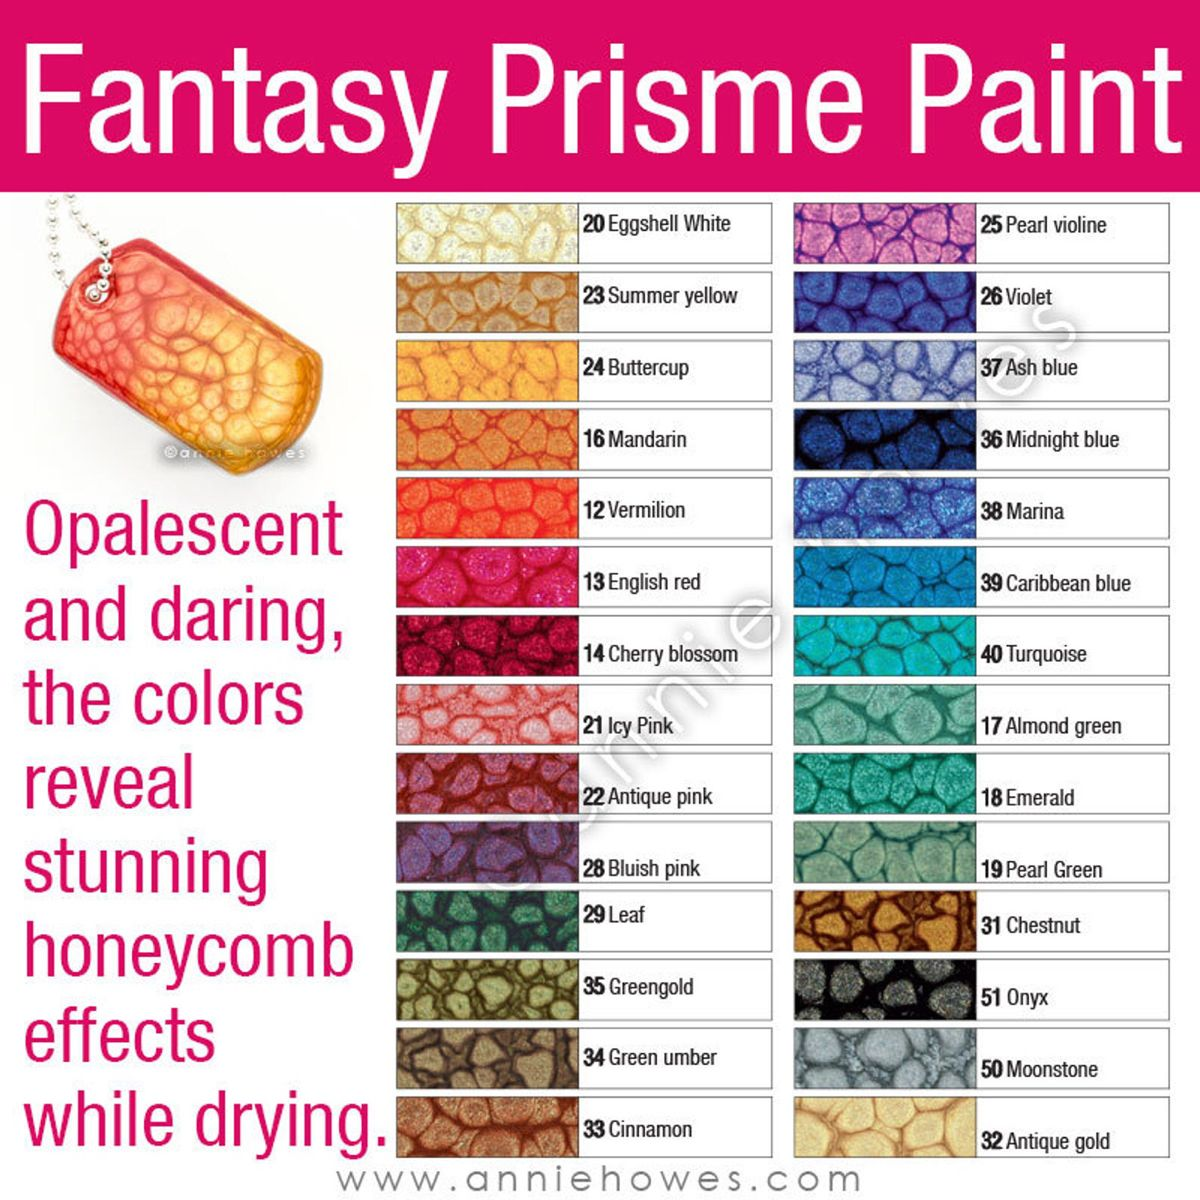 Fantasy Prisme Paint By Pebeo Special Effects Paint Jewelry Etsy In 2020 Pebeo Paint Painting Tools Painting